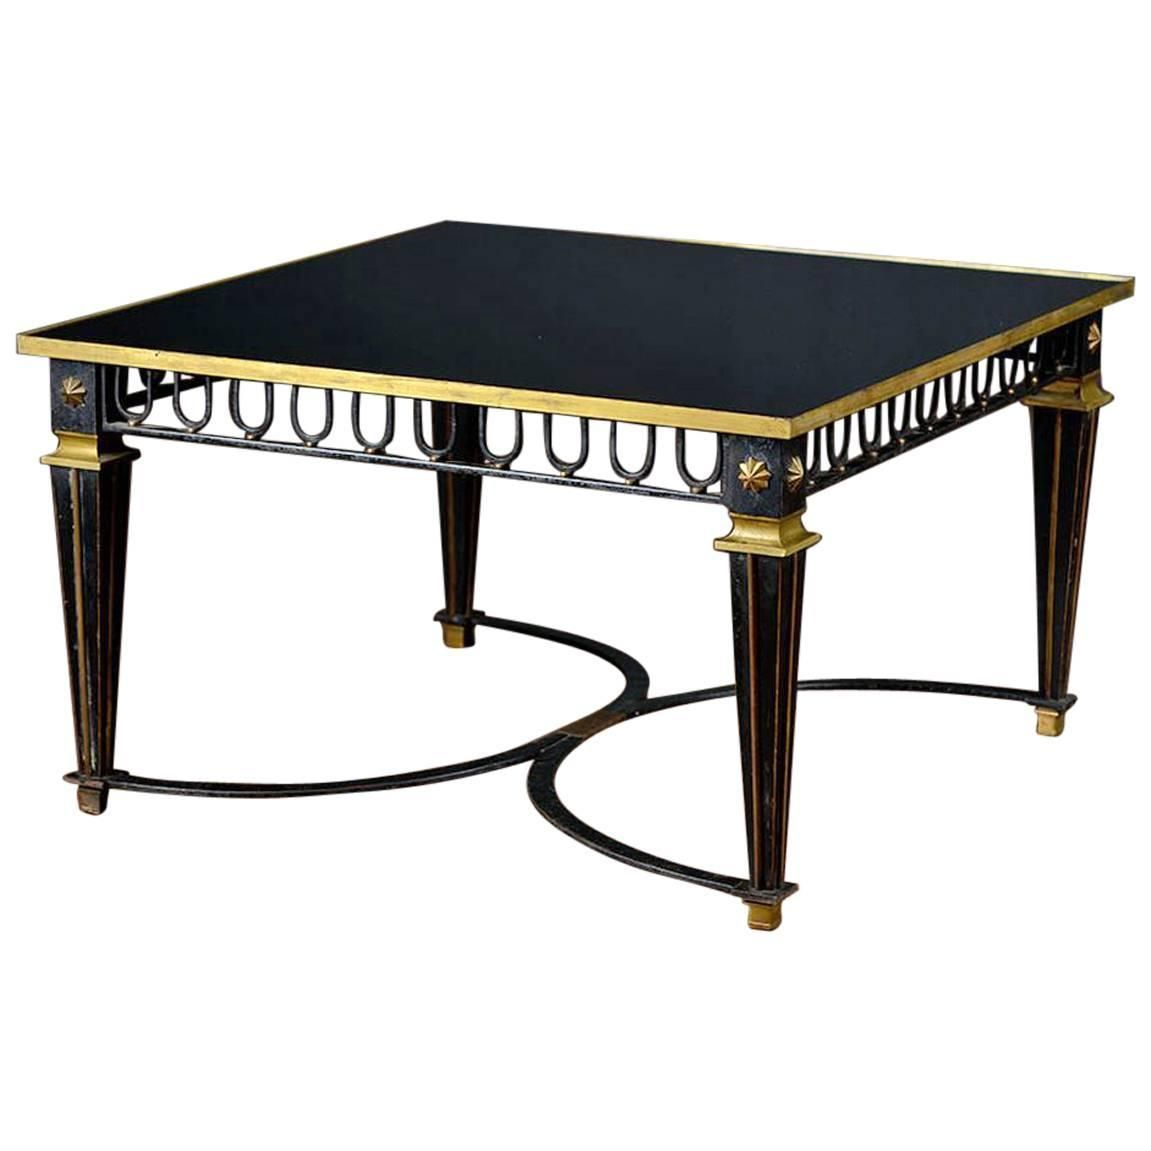 French Coffee Table Dimensions: Antique French Iron Coffee Table